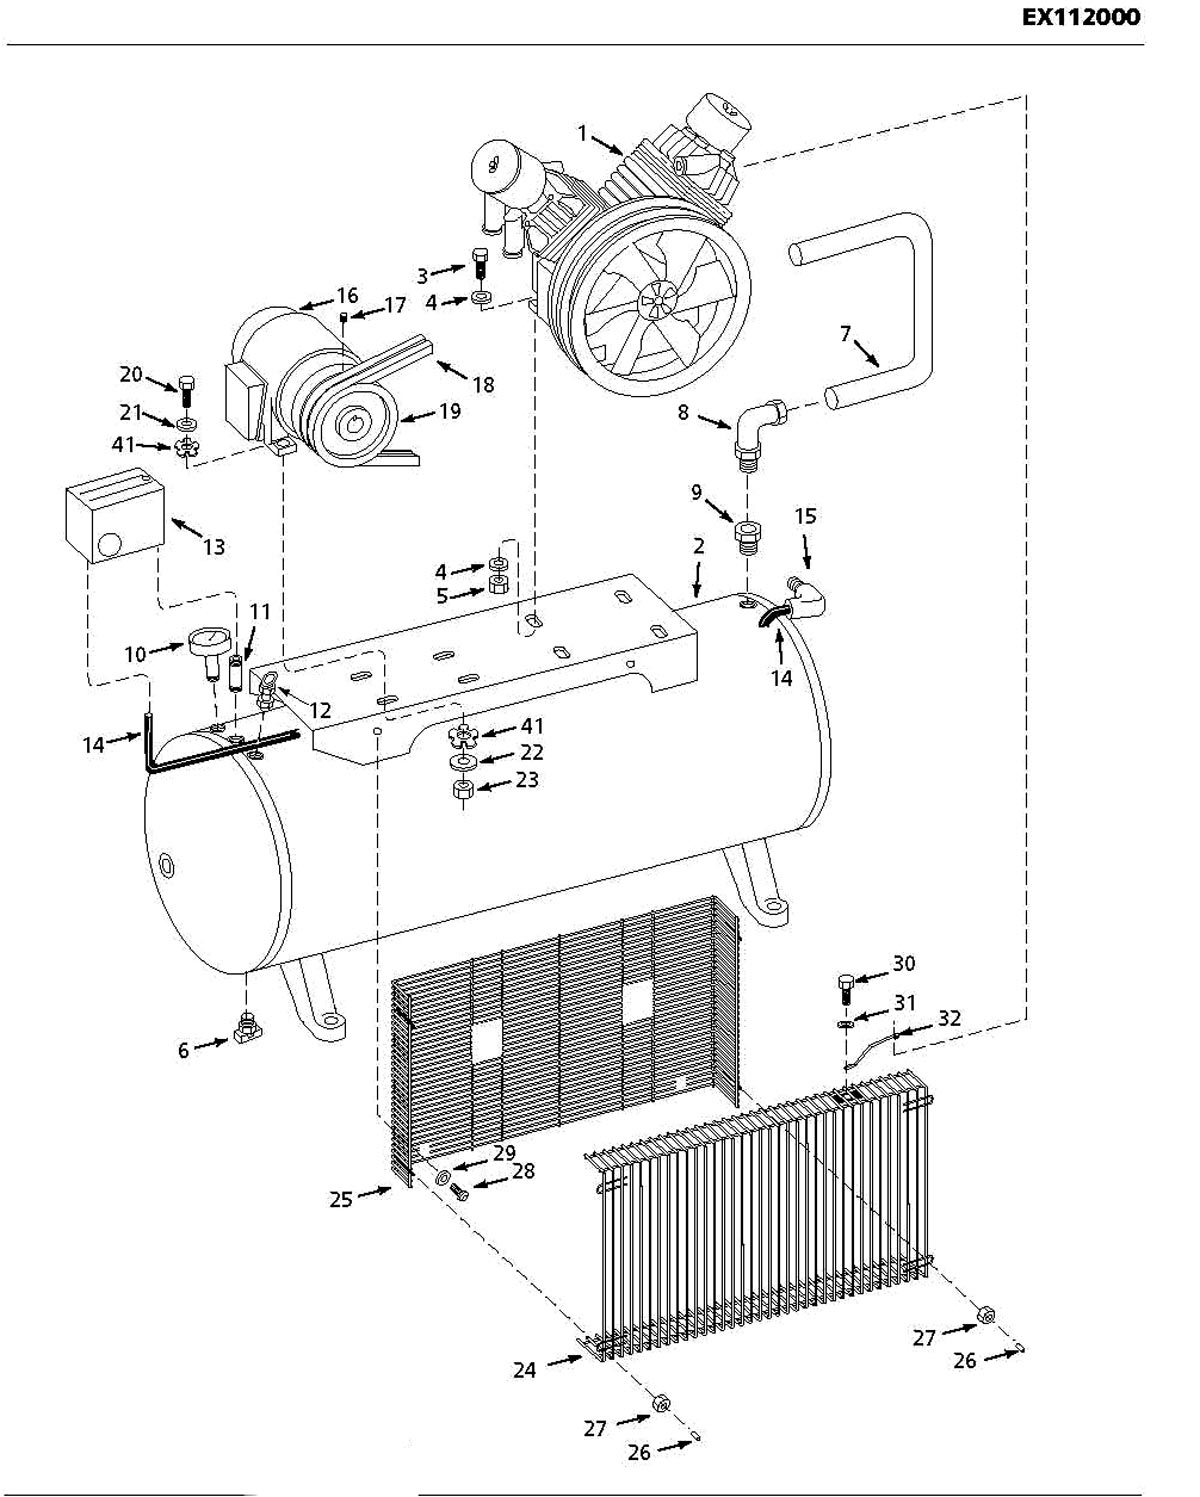 EX112000, EX1120 - Air Compressor Parts schematic